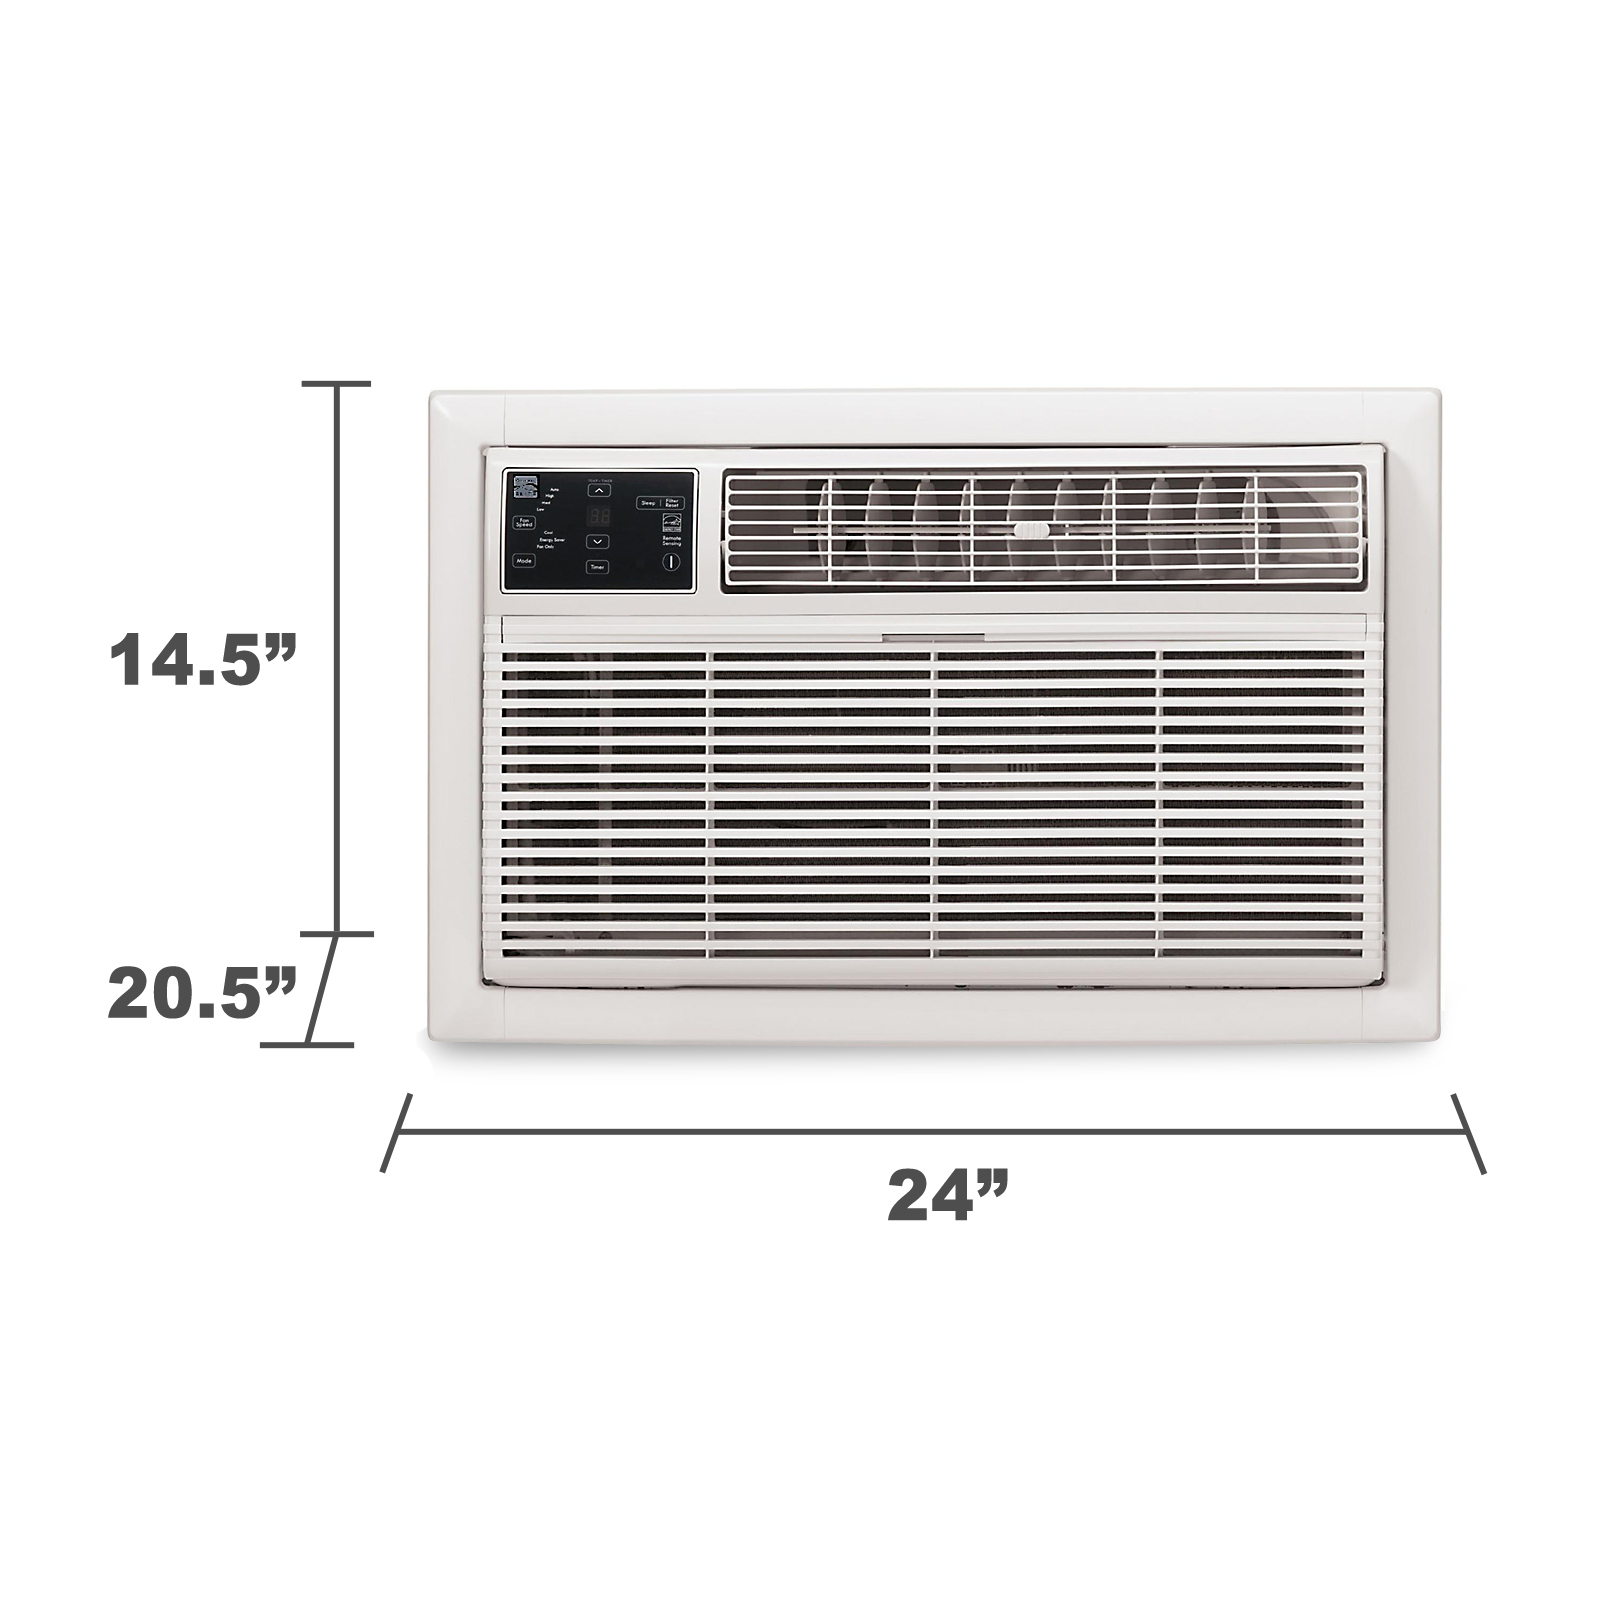 Kenmore Elite 76135 12 000 BTU 220V Through-the-Wall Air Conditioner